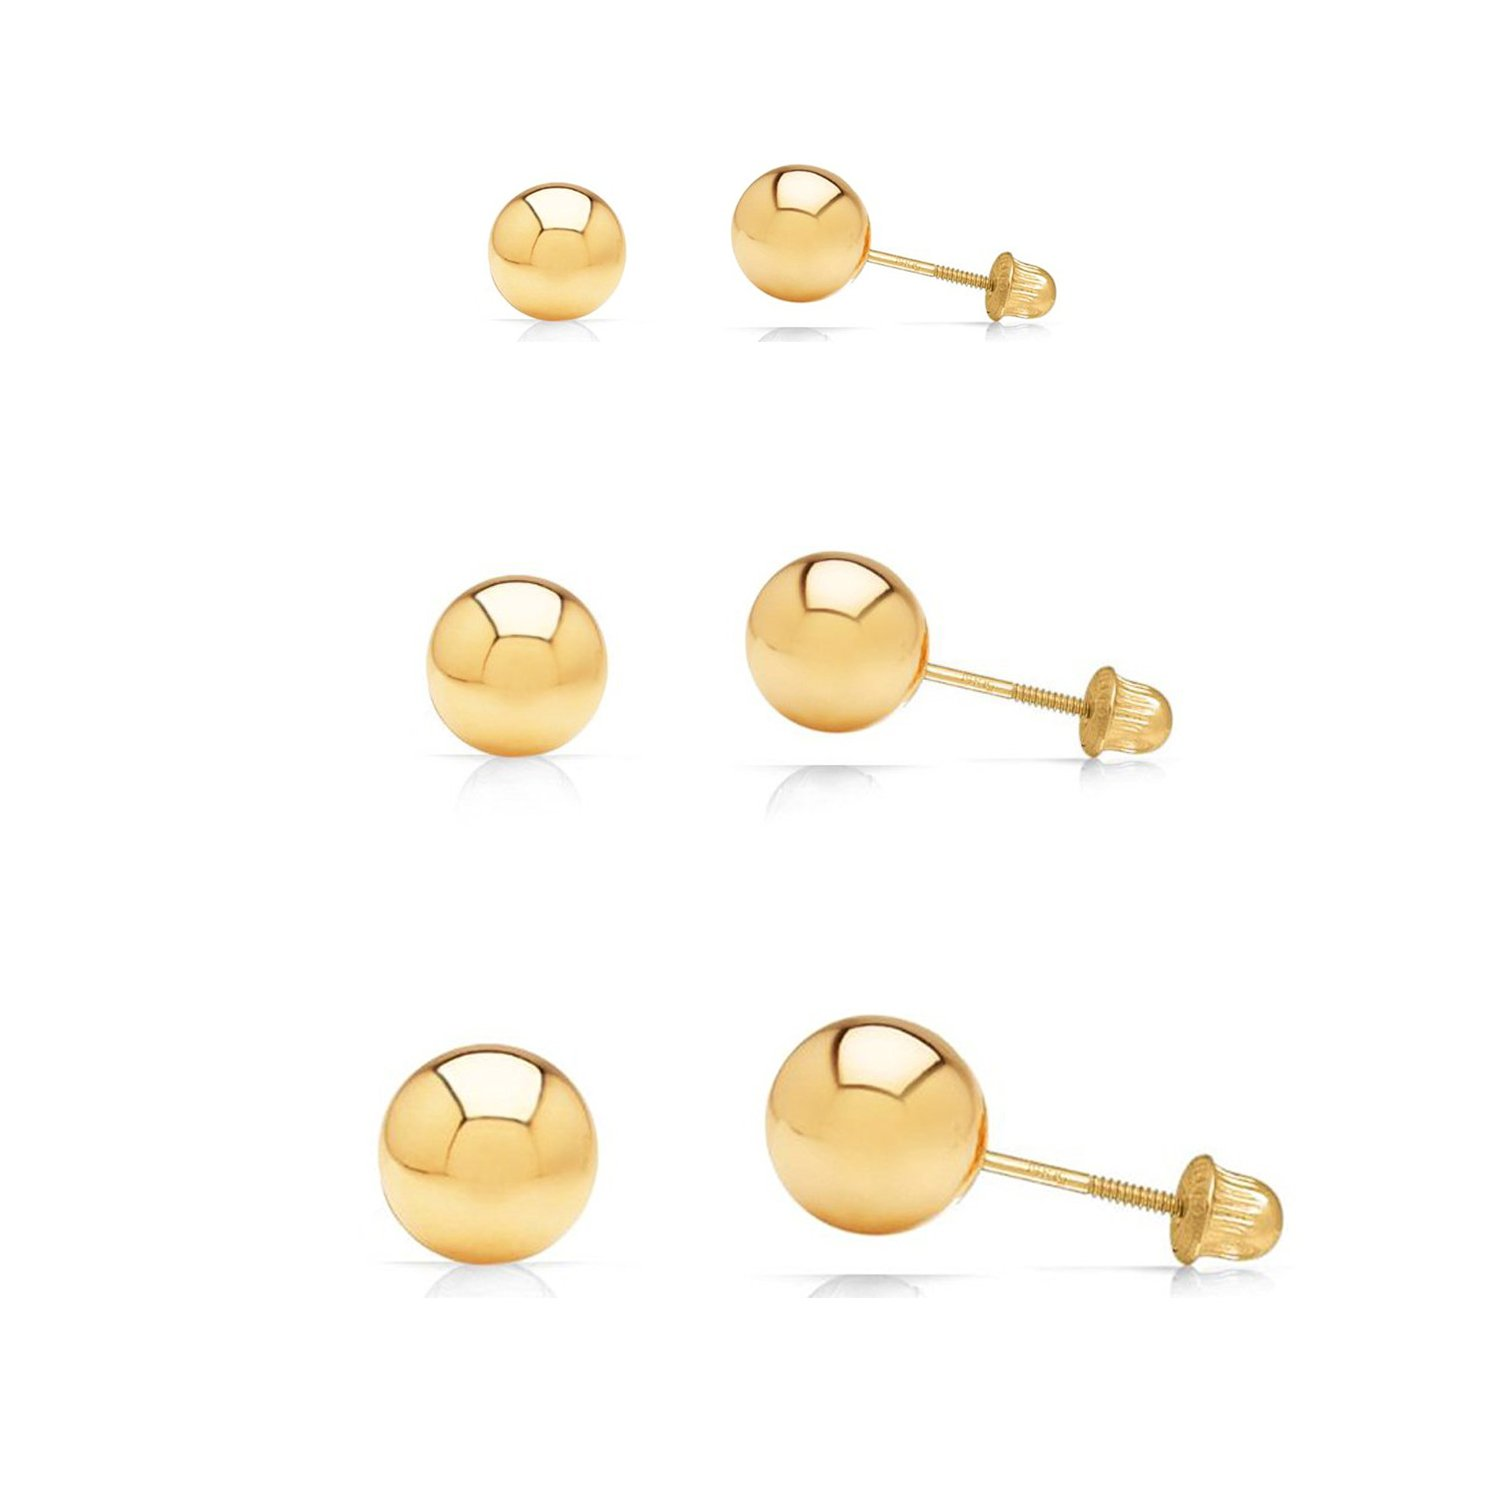 3 Pair Set 14k Yellow Gold Ball Stud Earrings 3mm, 4mm, 5mm with Secure Screw-Backs BLY14KSC-345SET